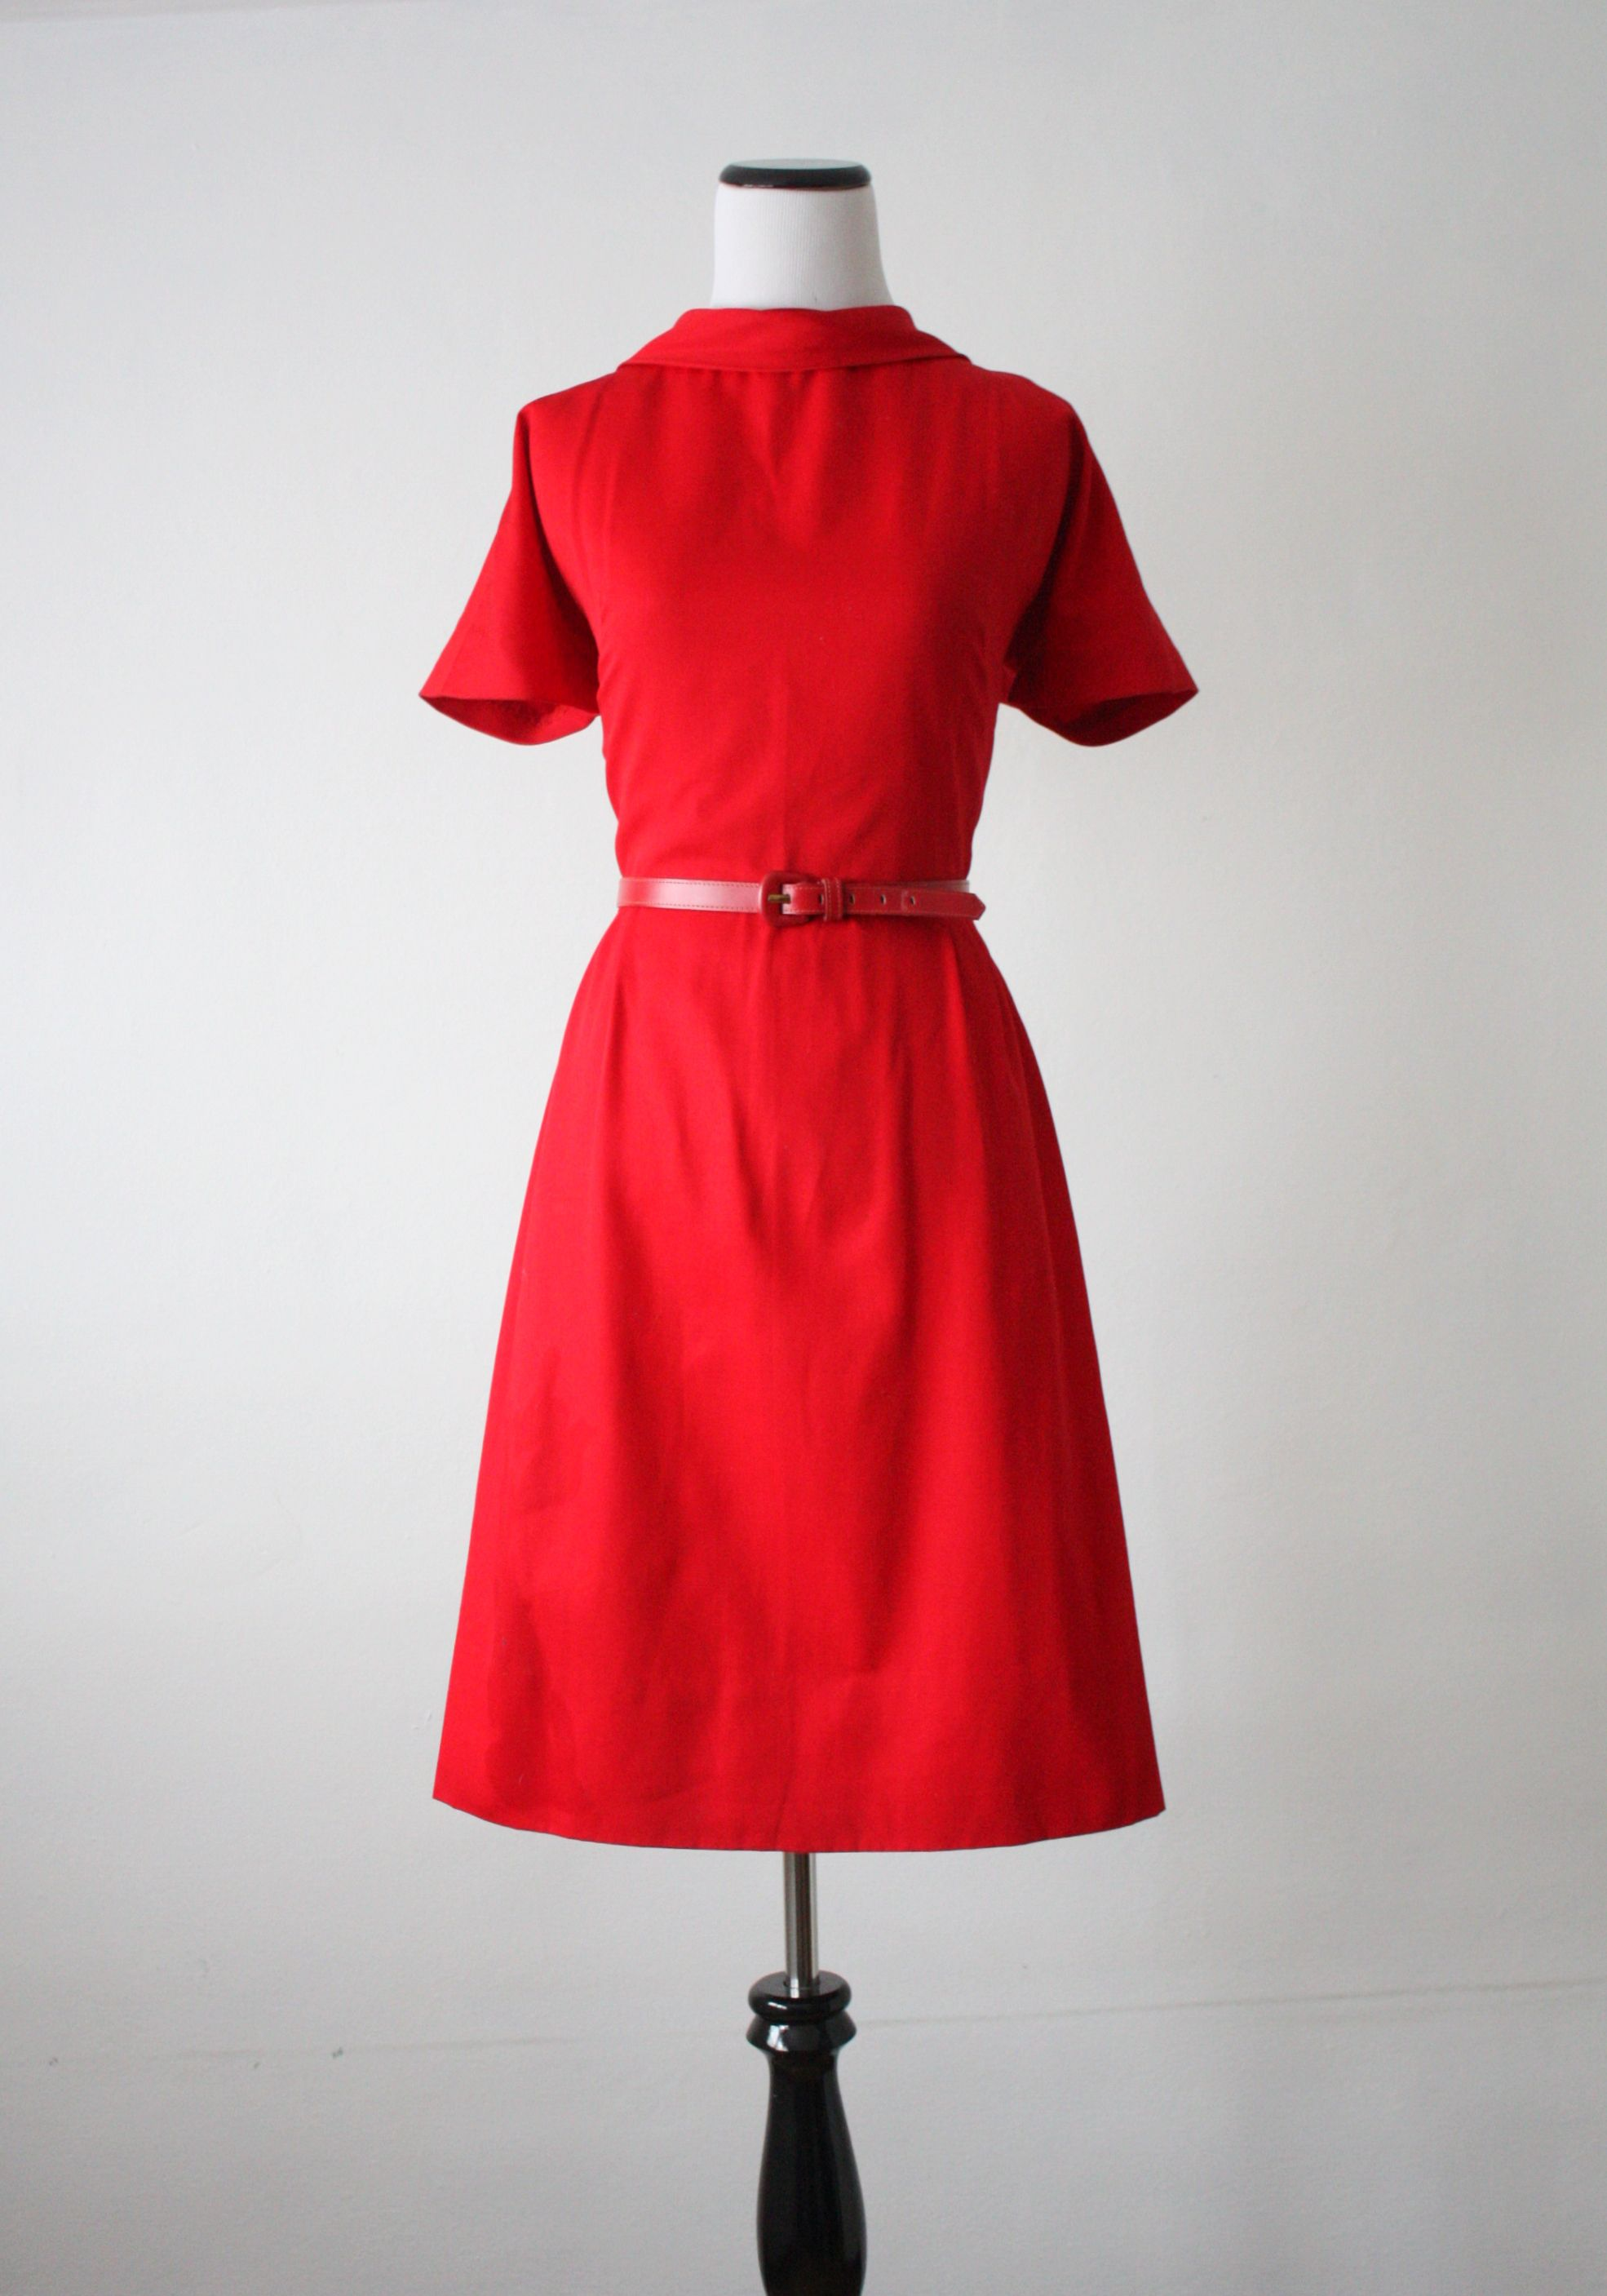 60s Dress Vintage 1960s Red Party Dress Etsy Red Dress Party 60s Dress Vintage Red Wiggle Dress [ 2814 x 1970 Pixel ]